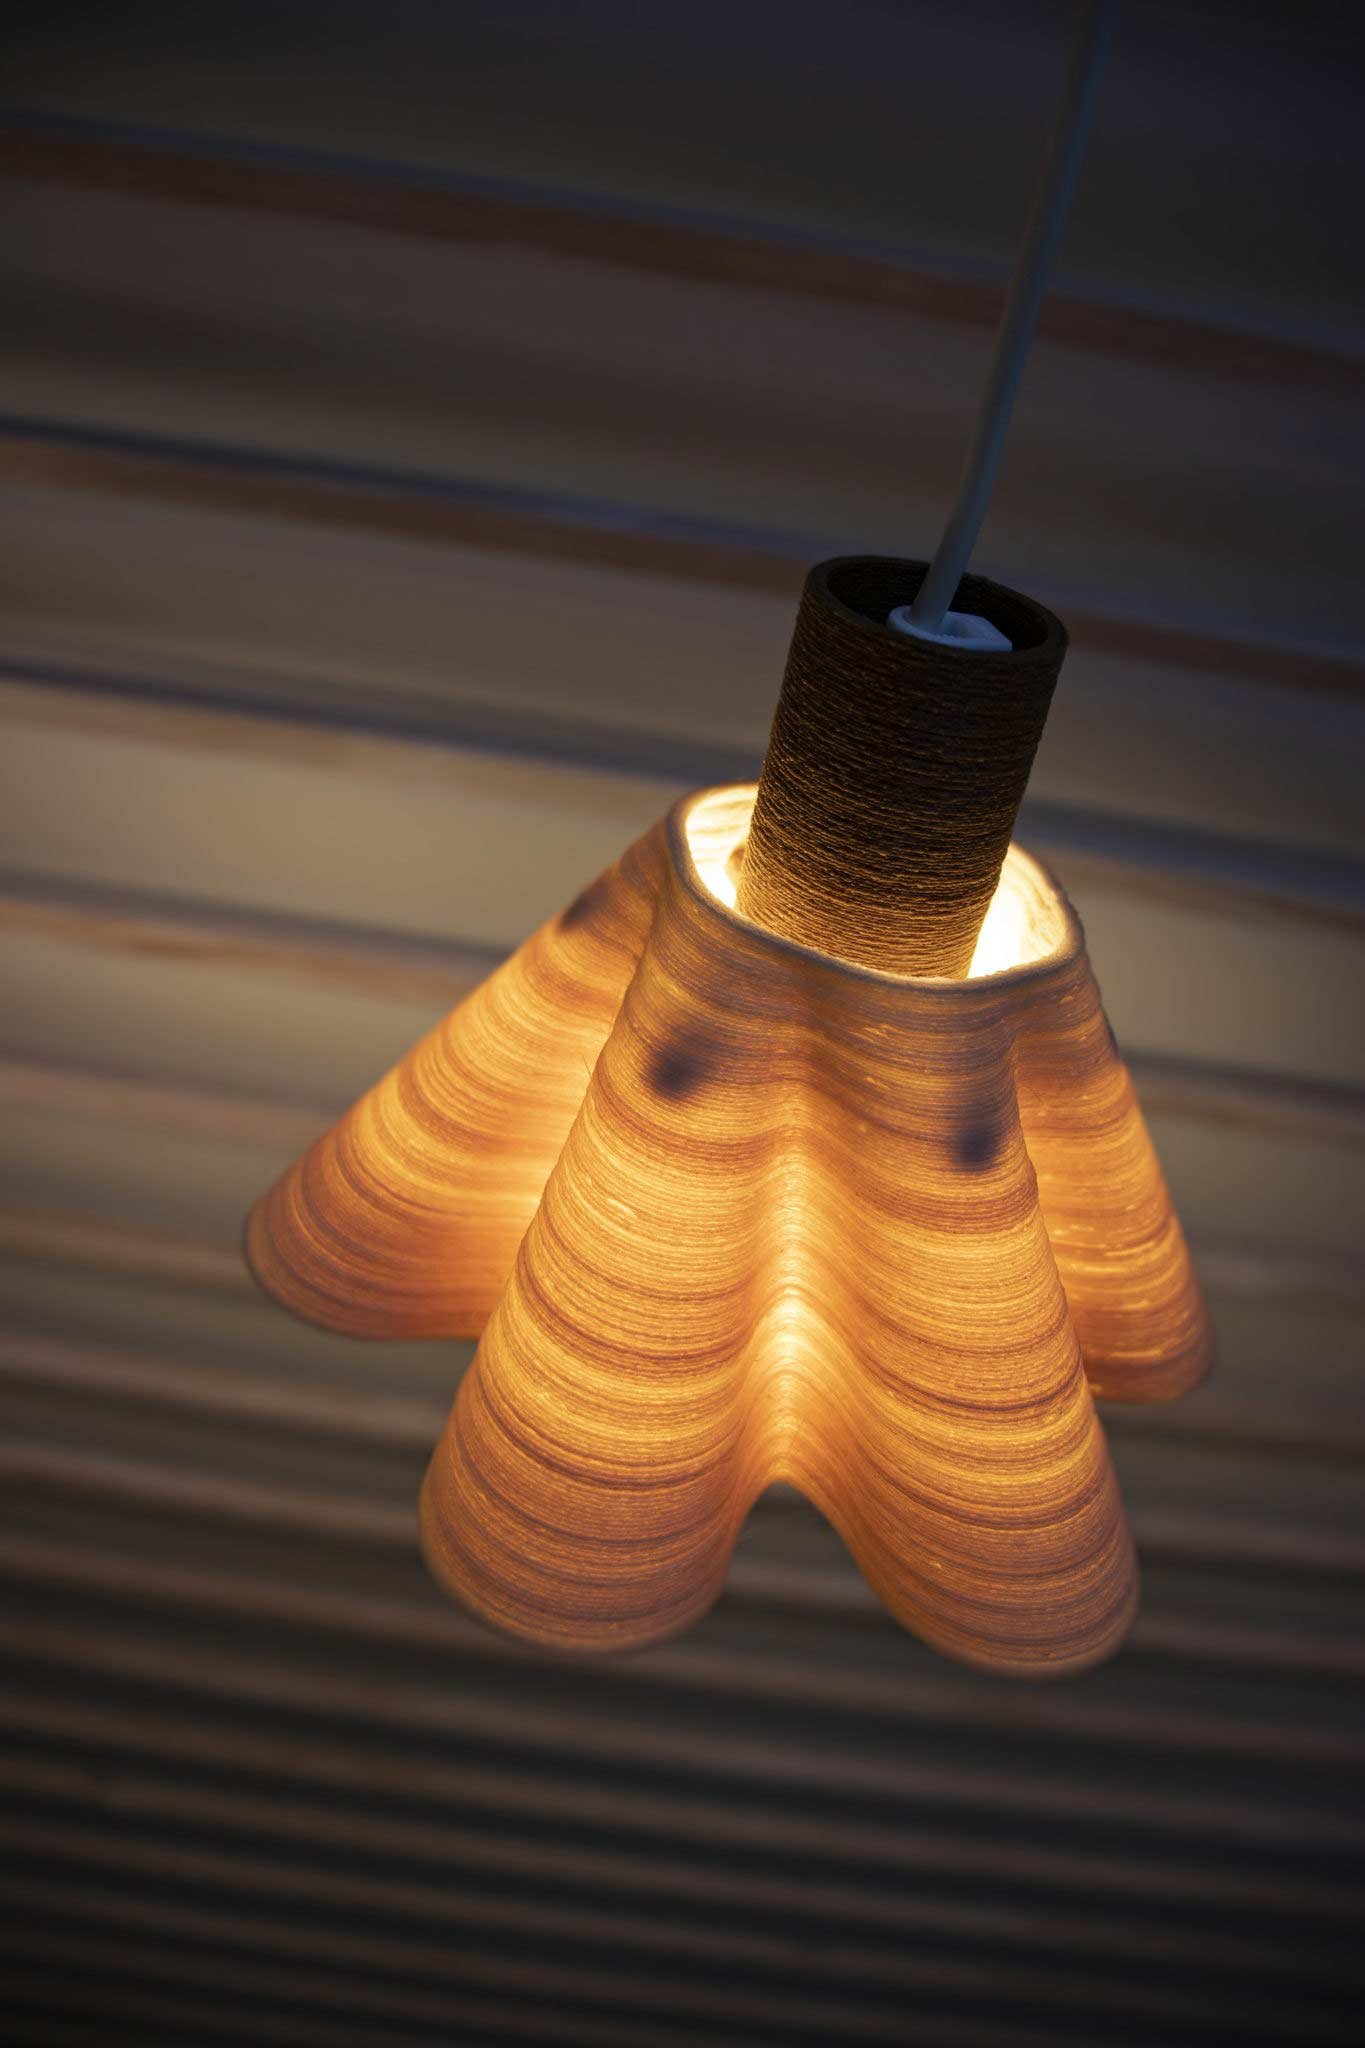 Lamp shade 3D printed from the cellulose-based materials by FDM. Photo via NOVUM.